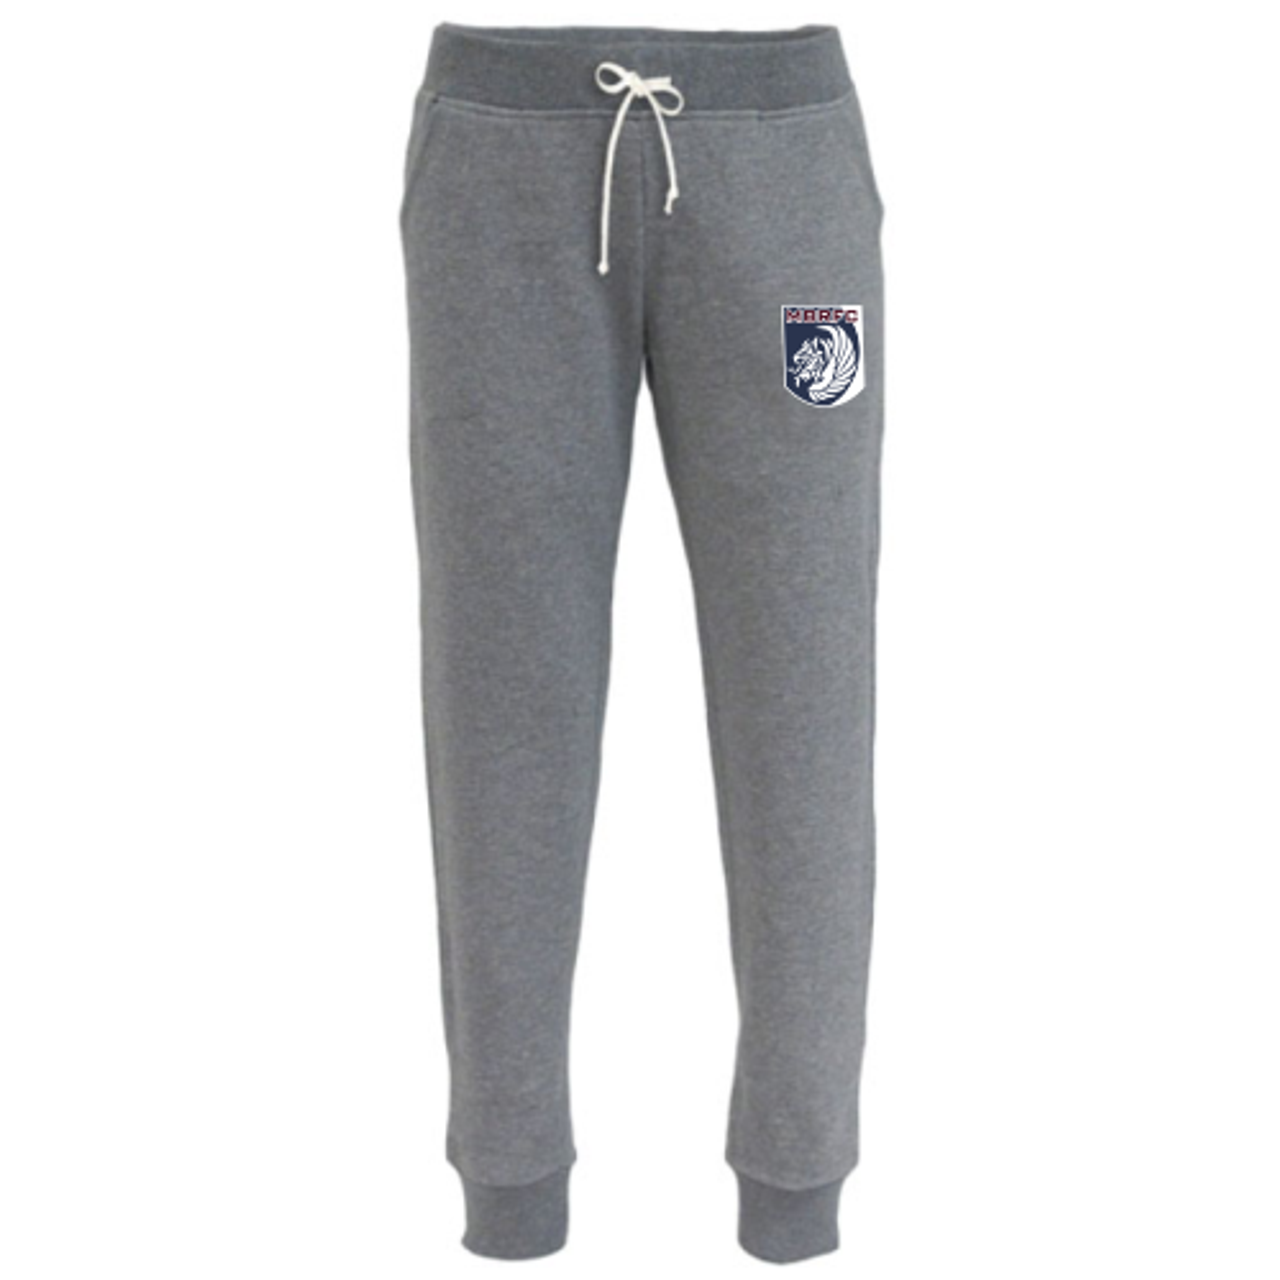 MB Rugby Joggers, Gray